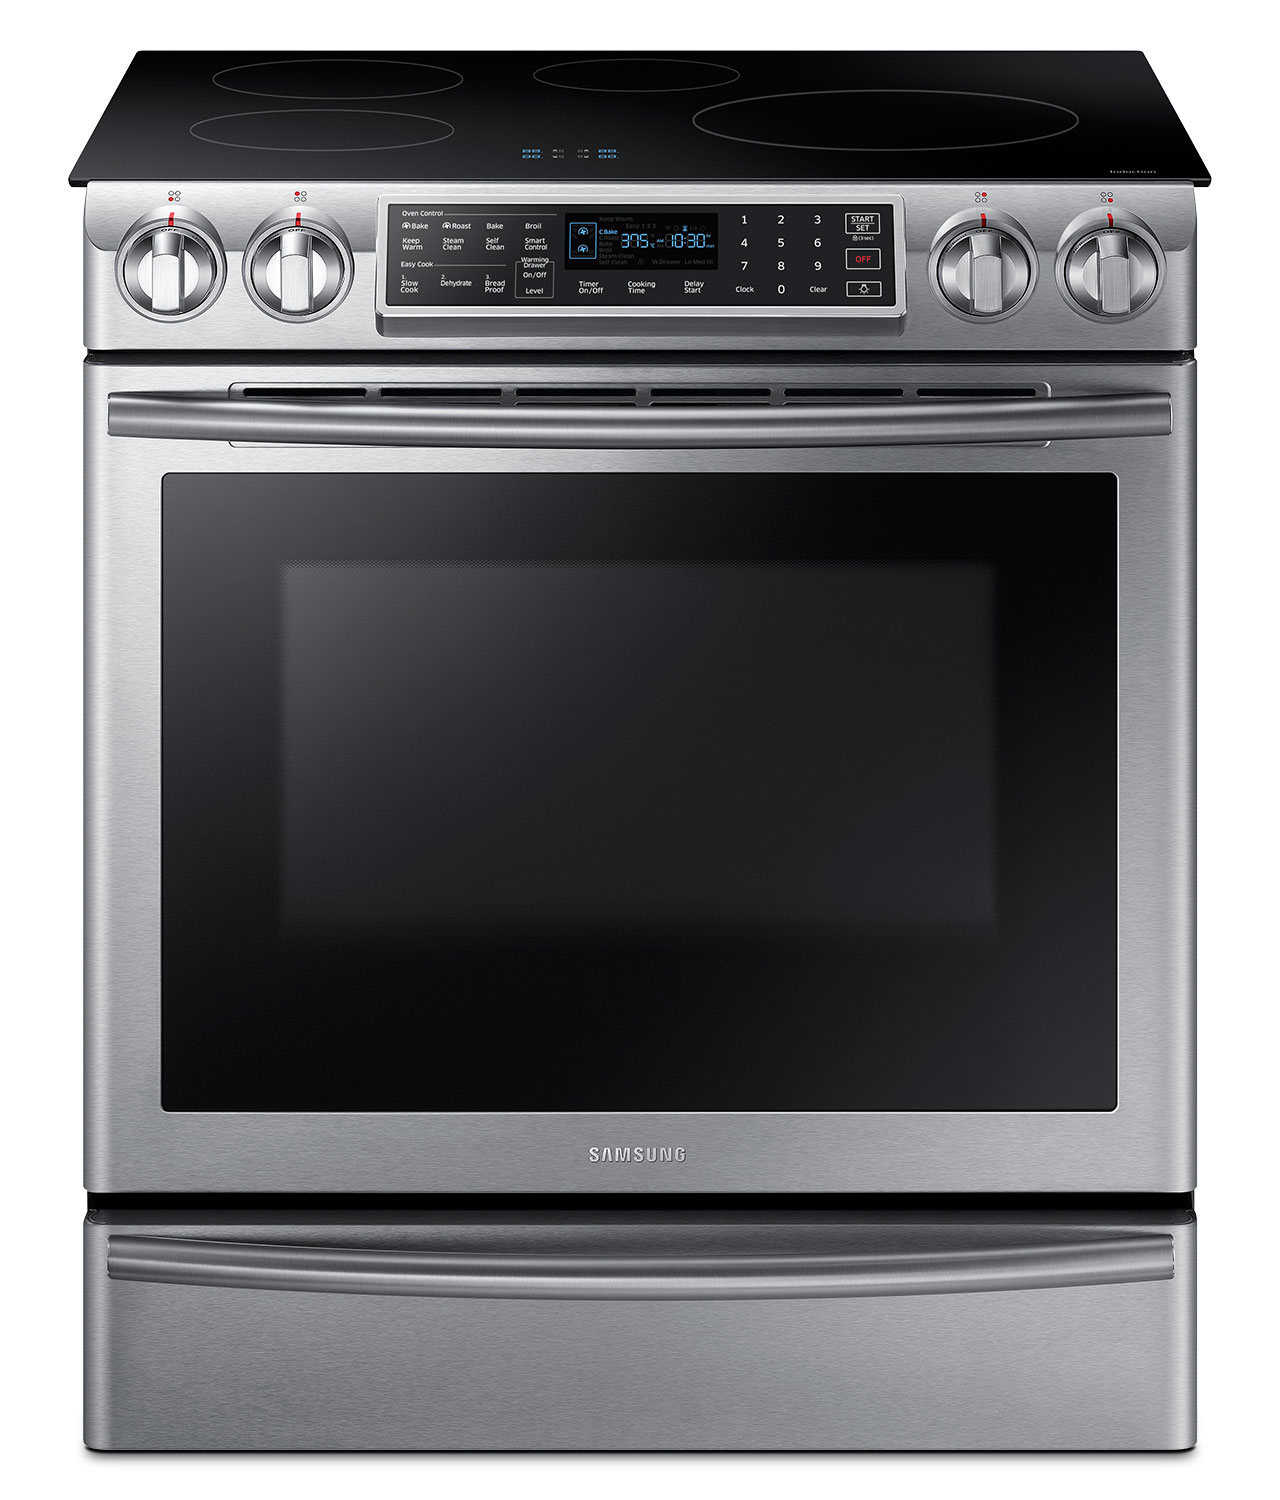 Cooking Products - Samsung 5.8 Cu. Ft. Slide-In Induction Range – NE58K9560WS/AC